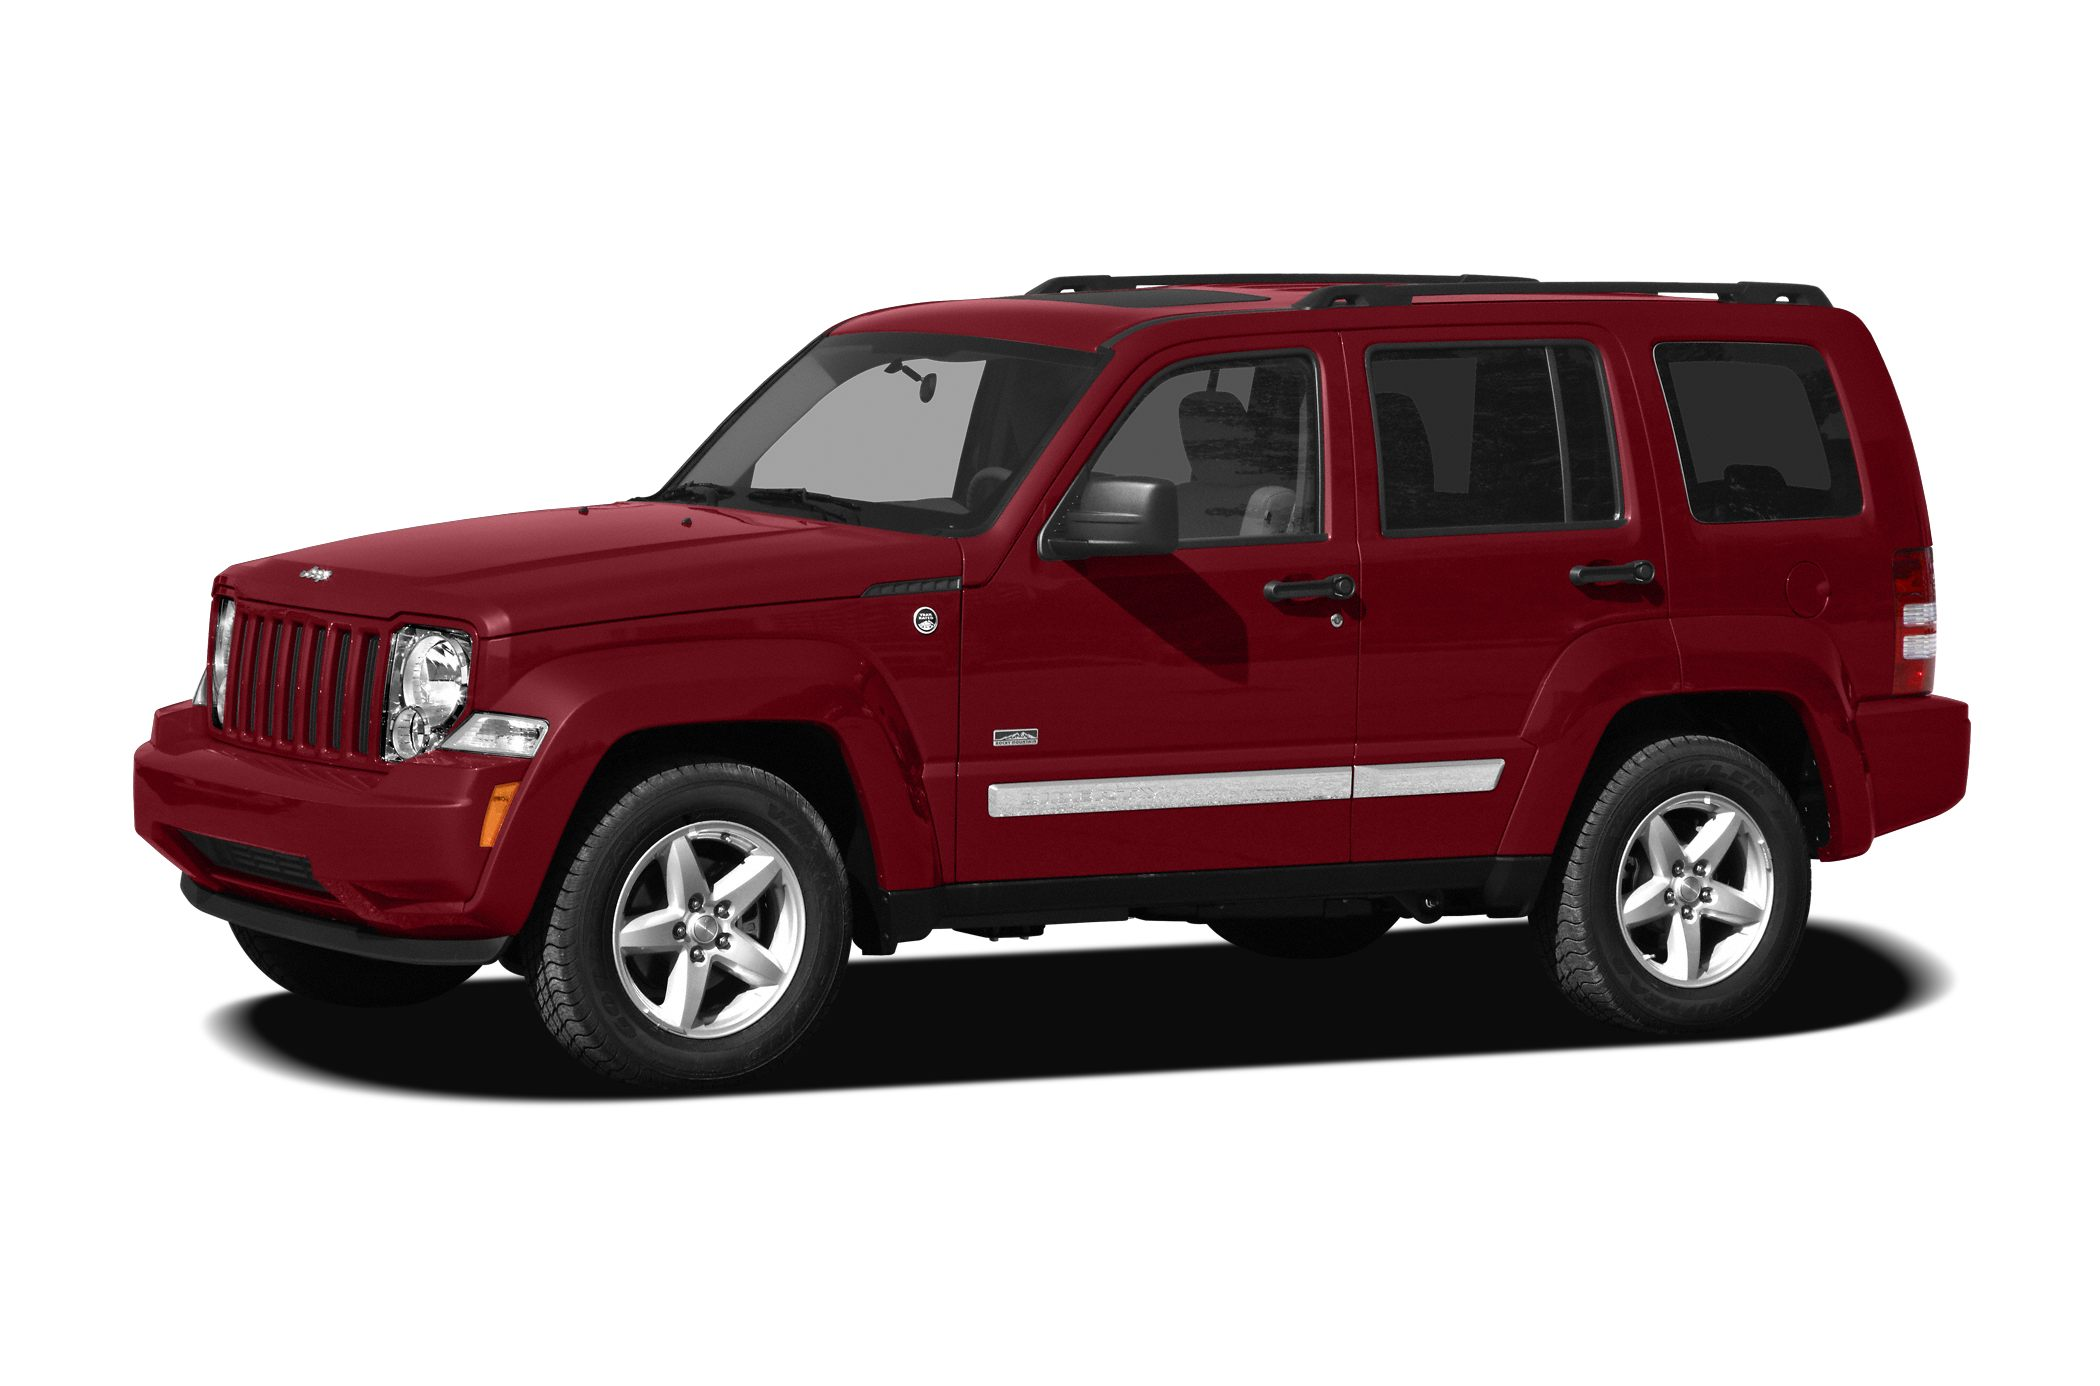 2009 Jeep Liberty Specs and Prices